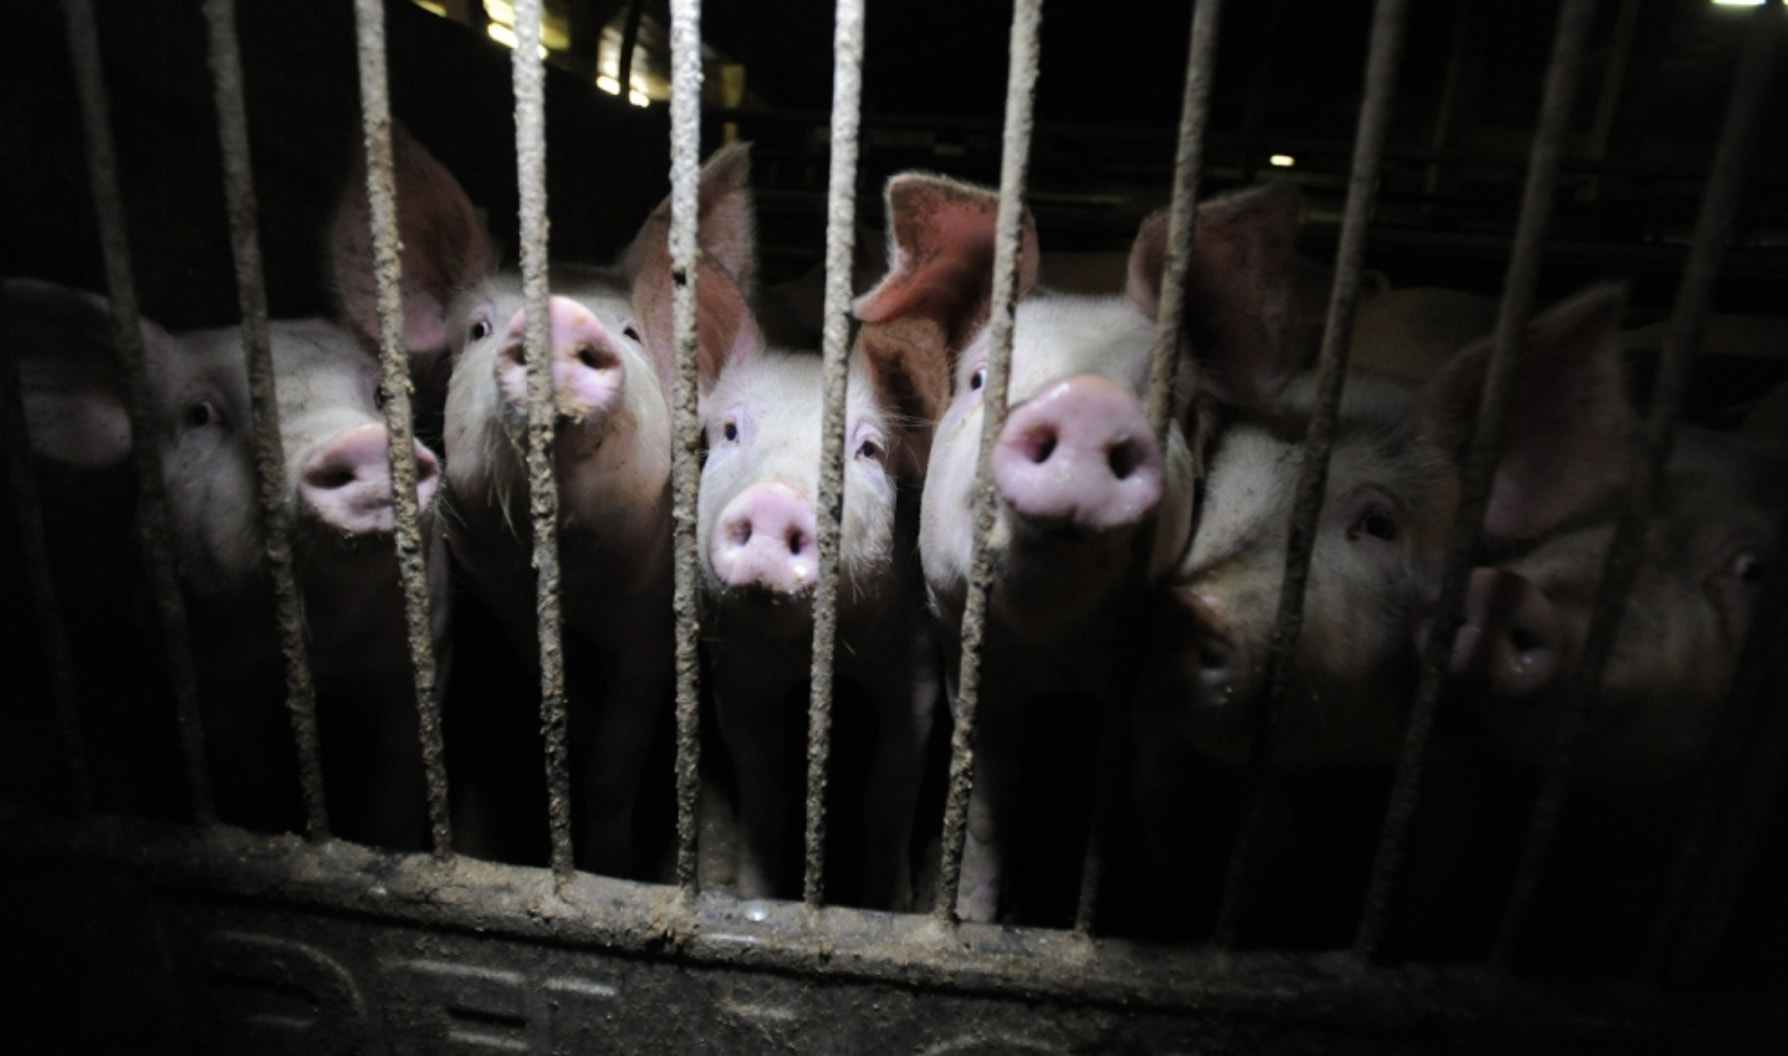 Pigs on a factory farm